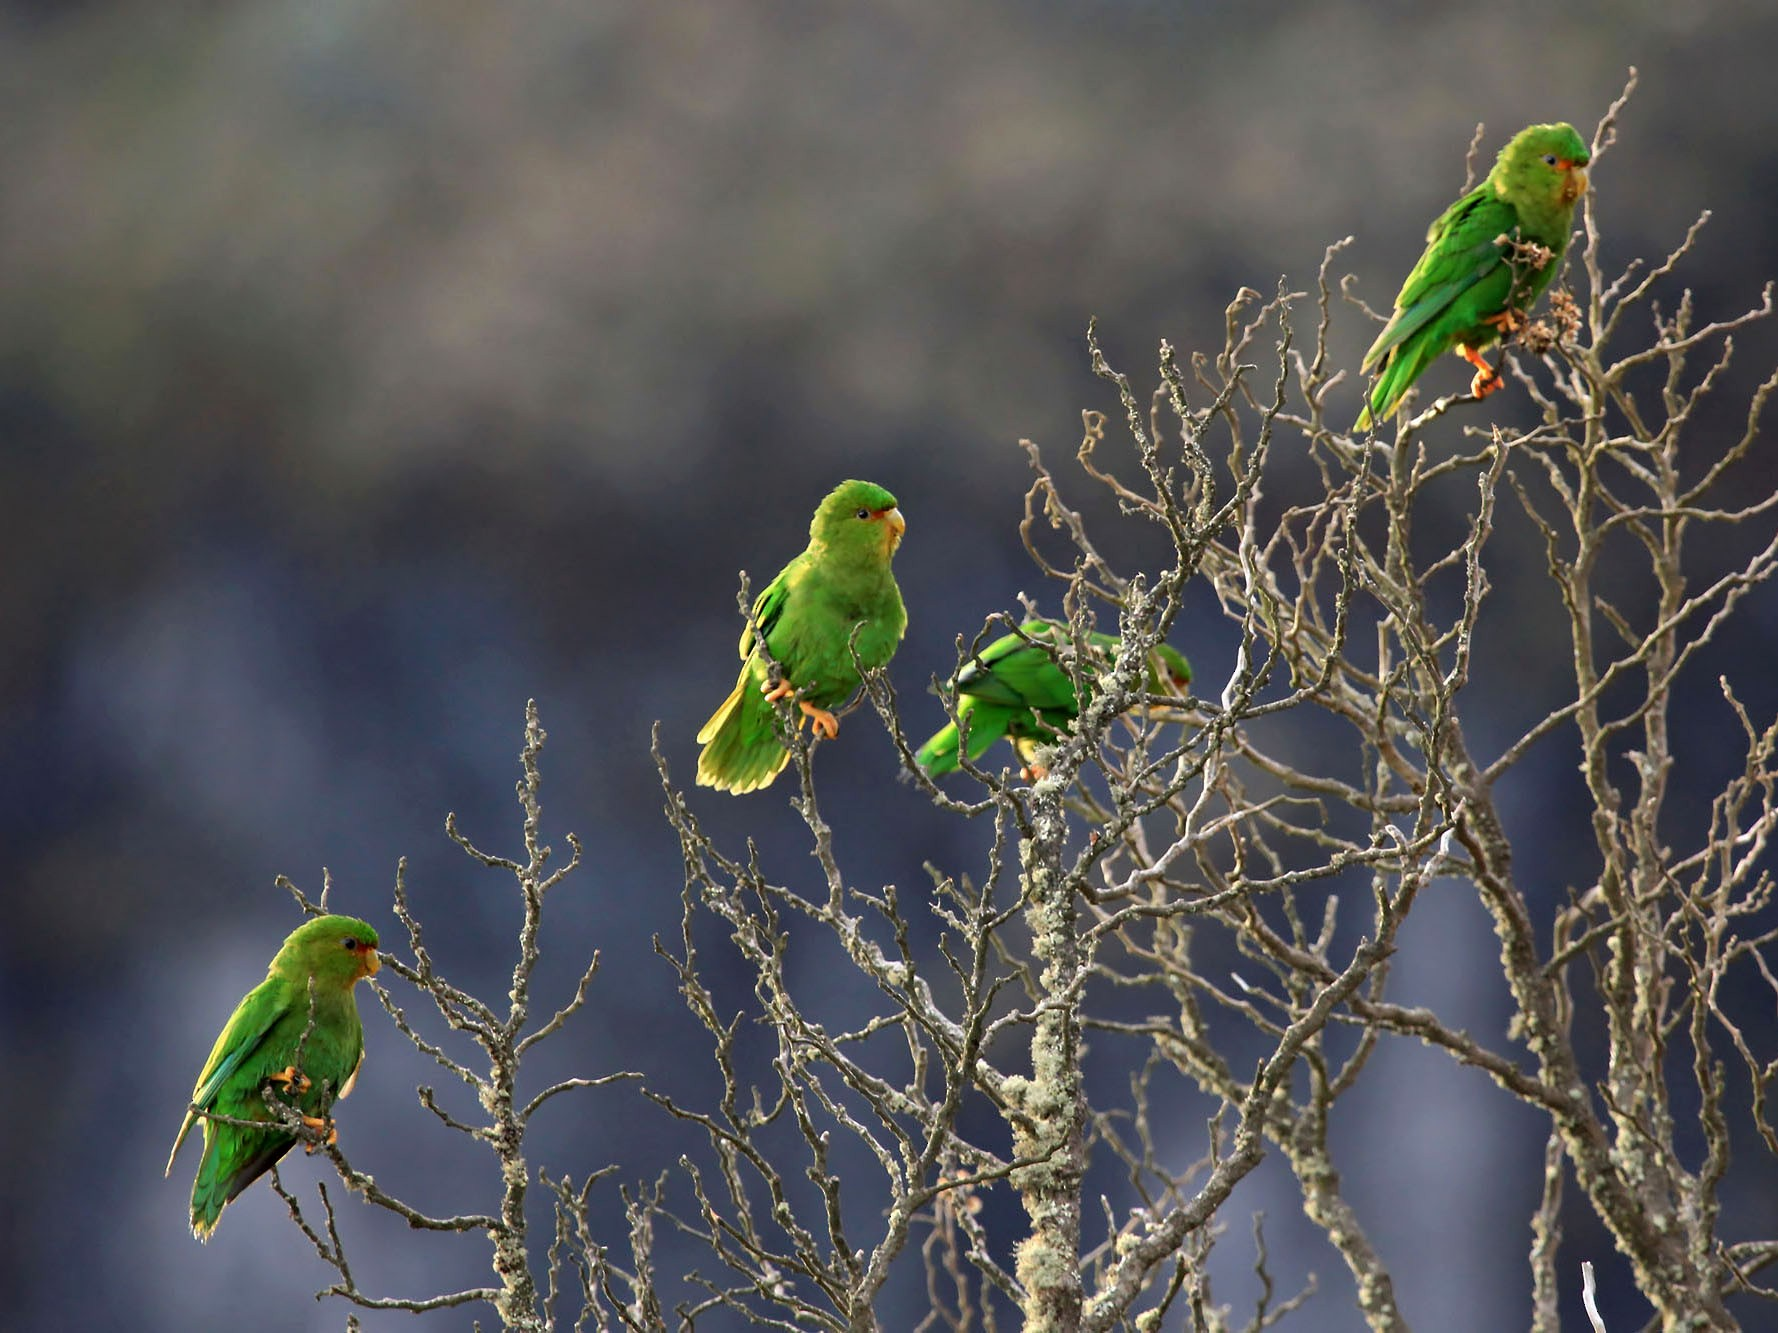 Rufous-fronted Parakeet - Phillip Edwards